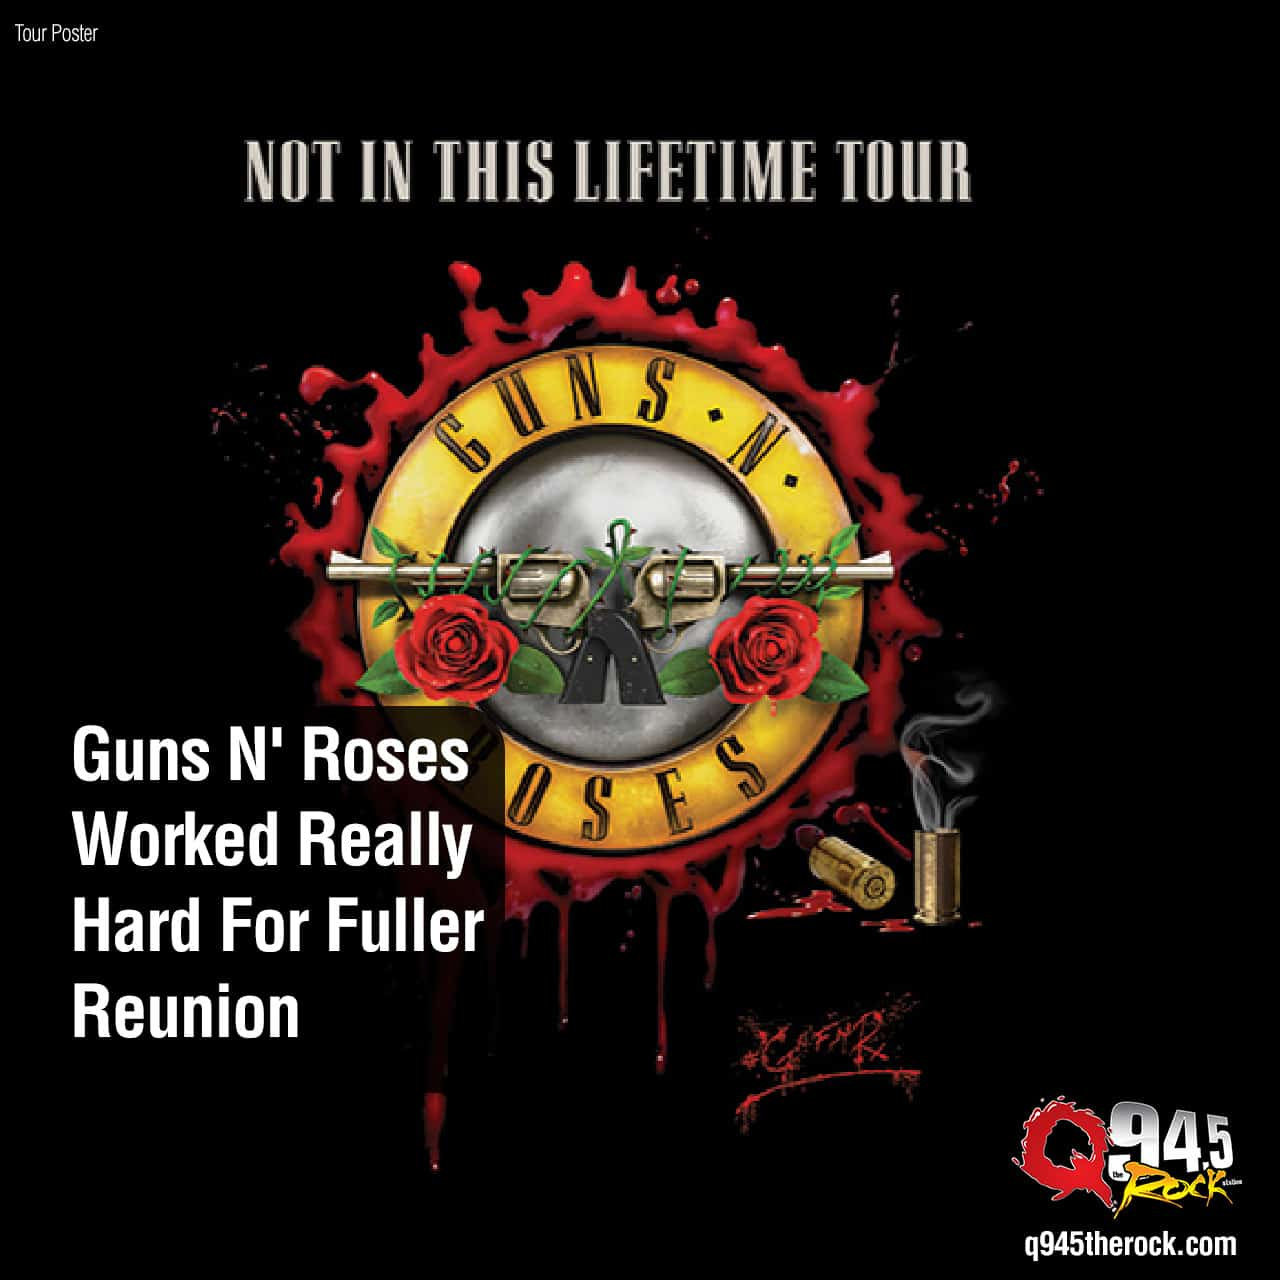 Guns N' Roses Worked Really Hard For Fuller Reunion